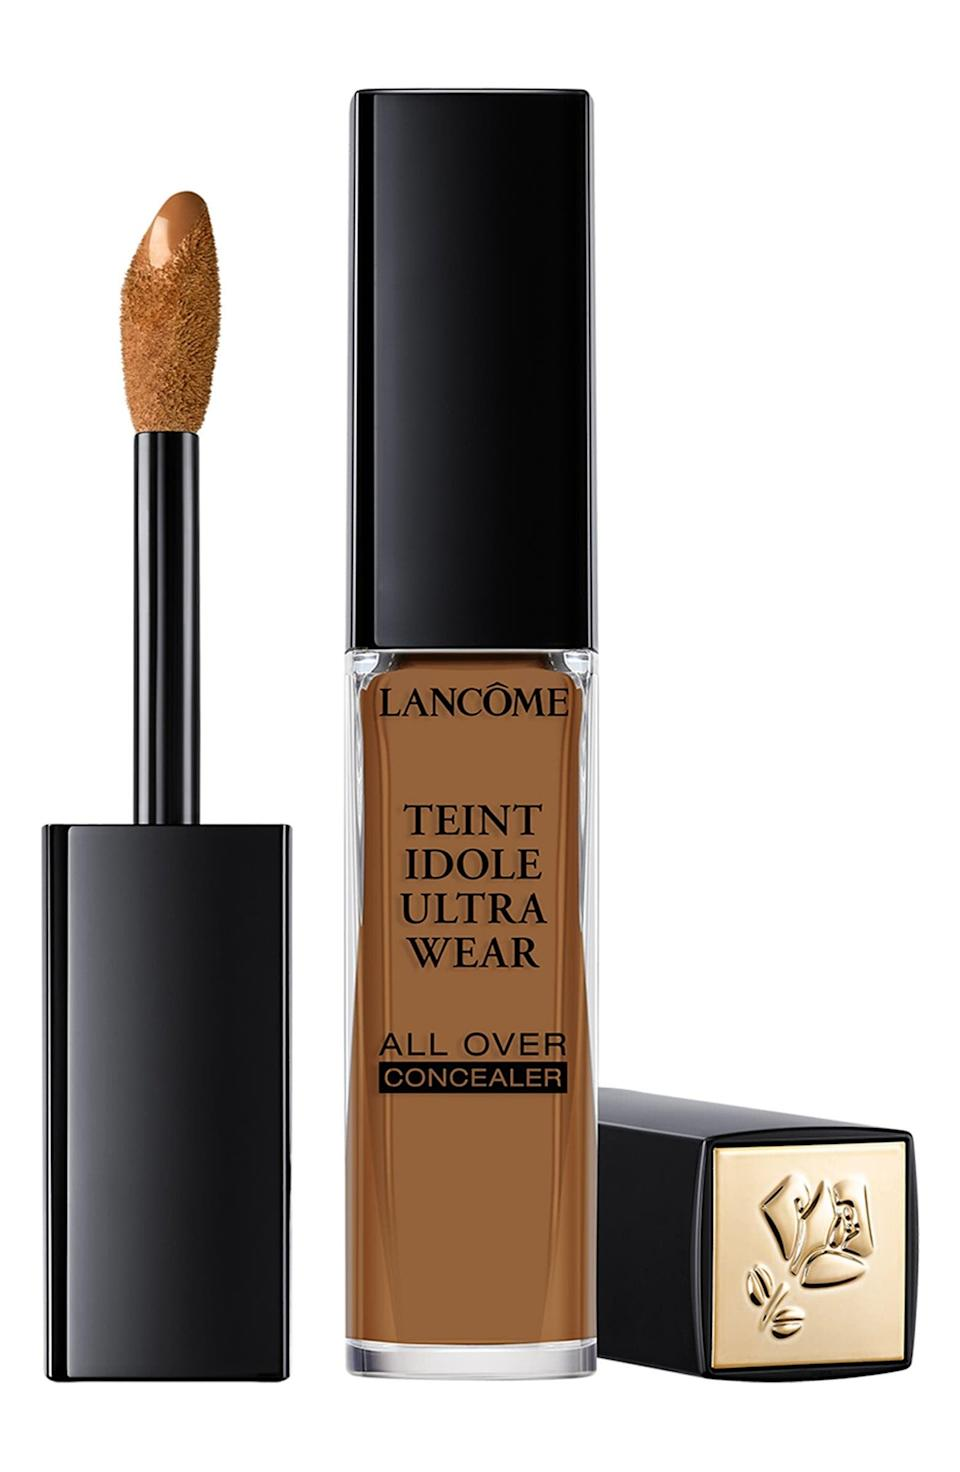 <p>Whether you need to brighten your undereyes, cover up a blemish, or give your complexion some depth, the <span>Lancôme Teint Idole Ultra Wear All Over Concealer</span> ($29) can truly do it all. It's lightweight and hydrating with a buildable, full-coverage formula, perfect for everyday use.</p>